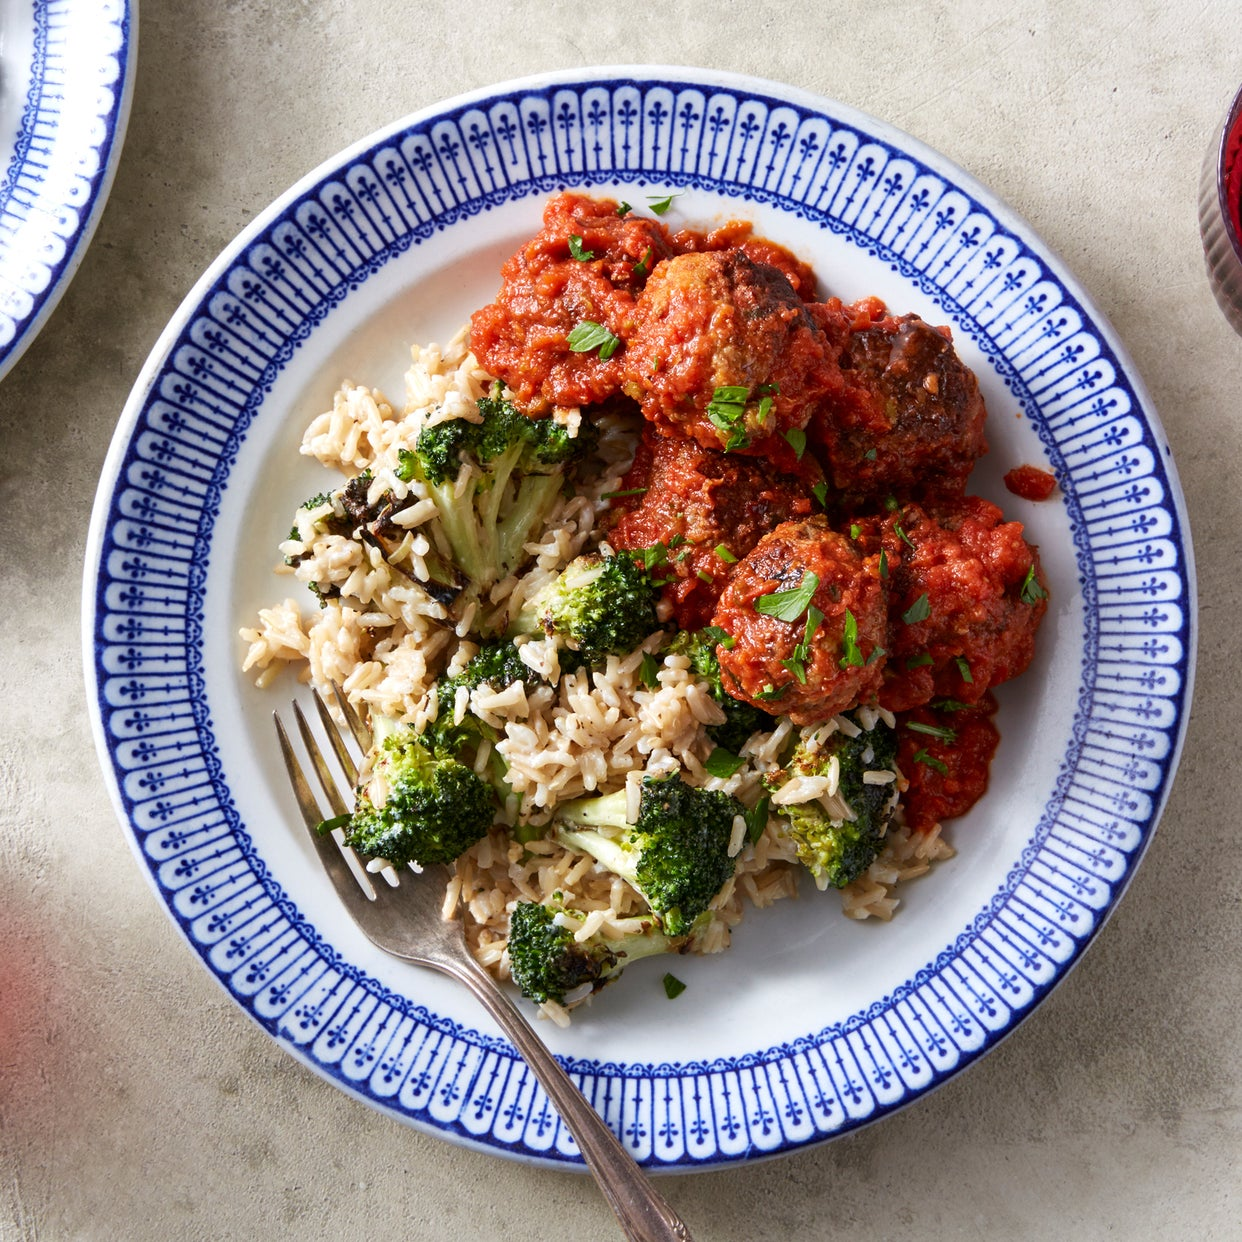 Meatballs & Tomato Sauce with Creamy Rice & Broccoli